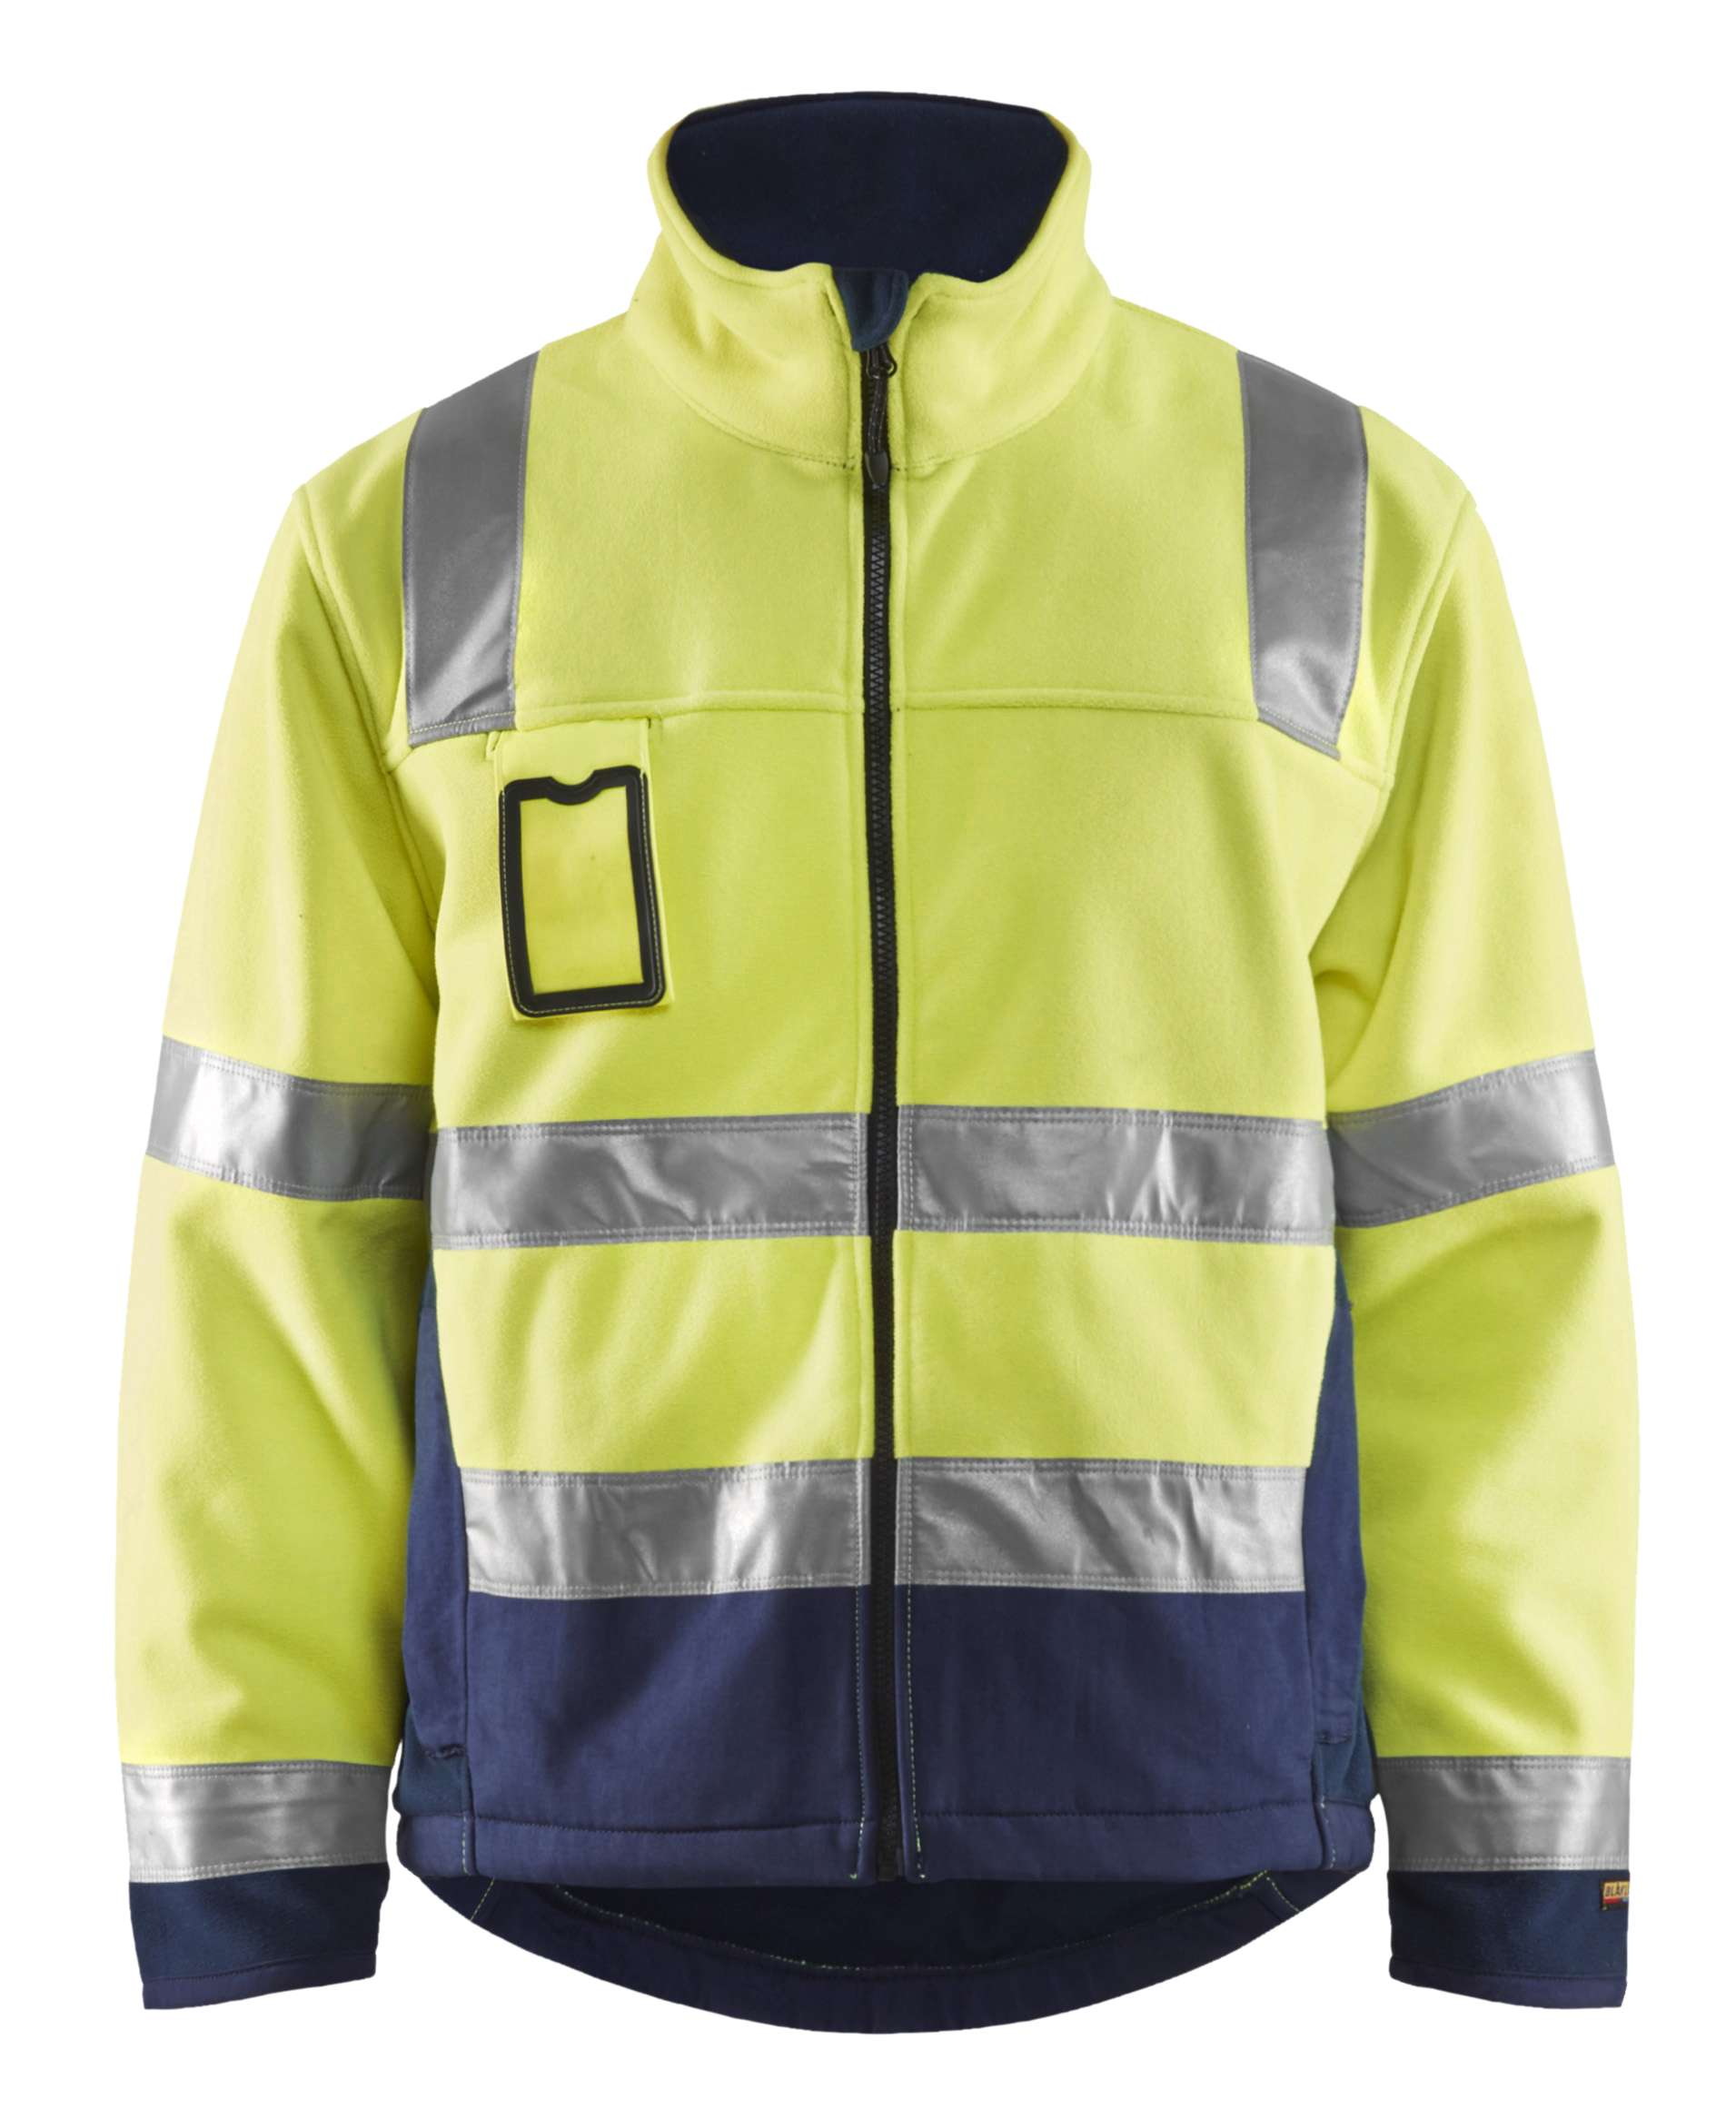 Blaklader Fleece jassen 48492545 High Vis geel-marineblauw(3389)